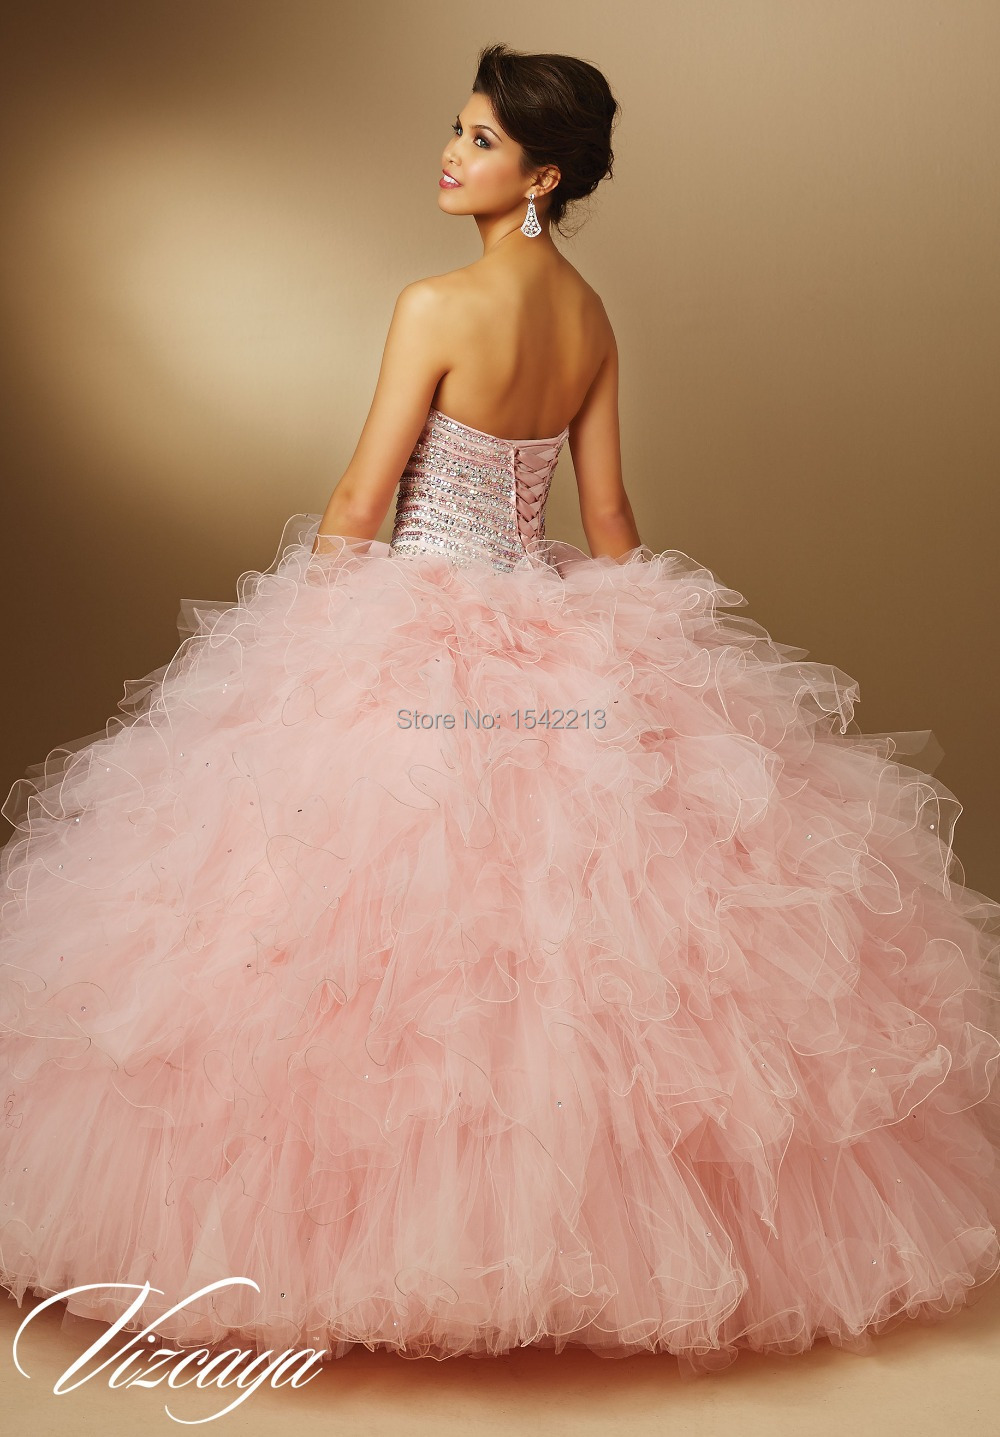 Aliexpress.com : Buy Sparkle Crystals Ruffled Long Strapless Ball ...